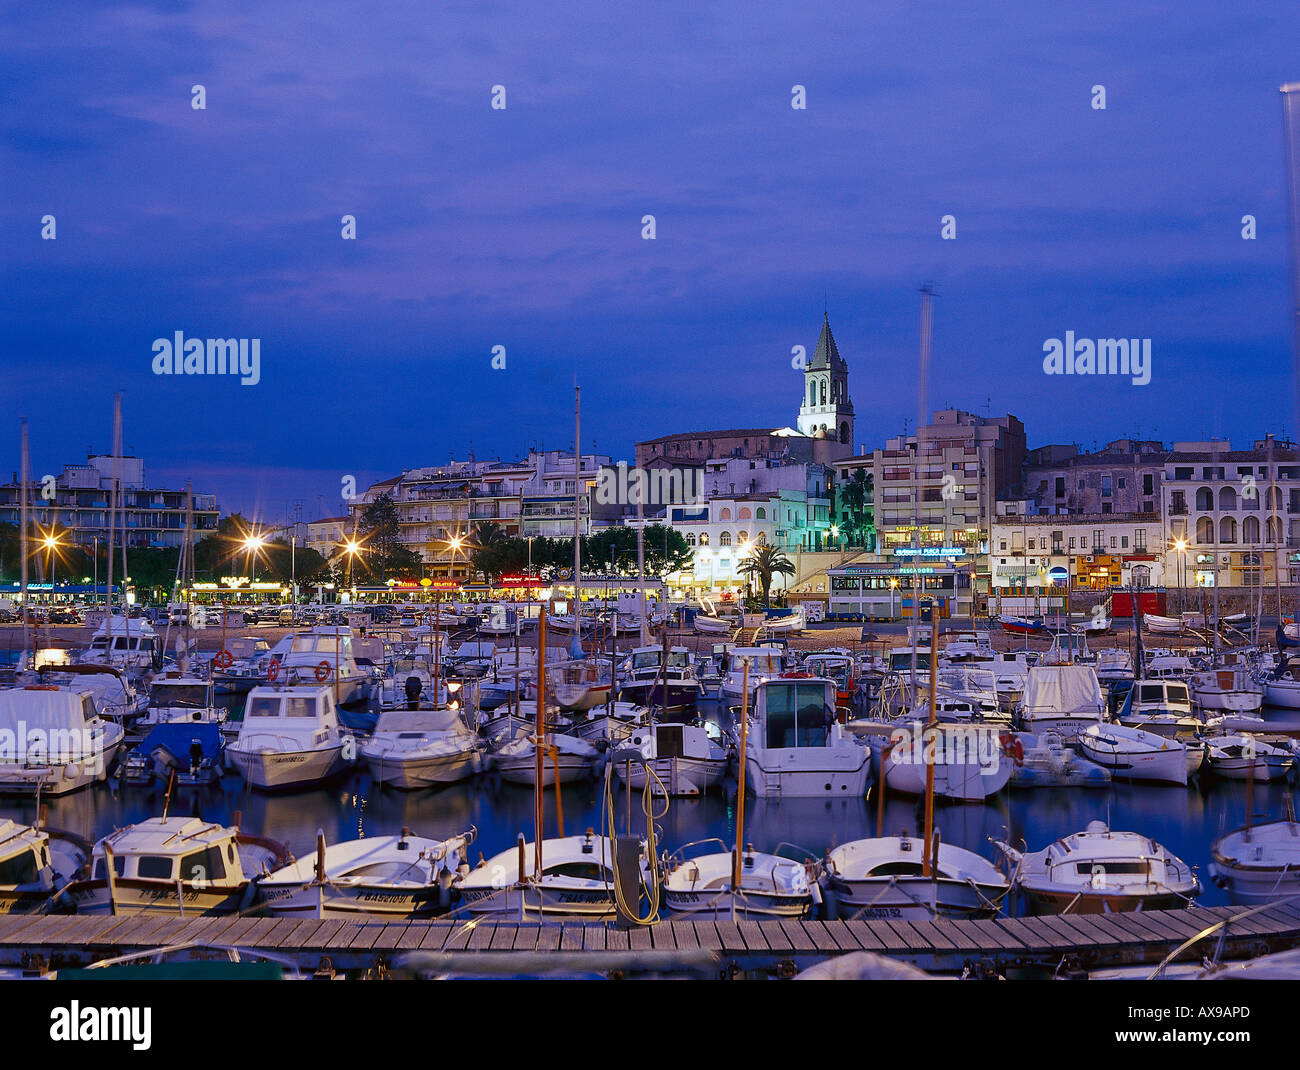 Townscape with marina, harbour, Palamós, Costa Brava, Province of Girona, Catalonia, Spain - Stock Image